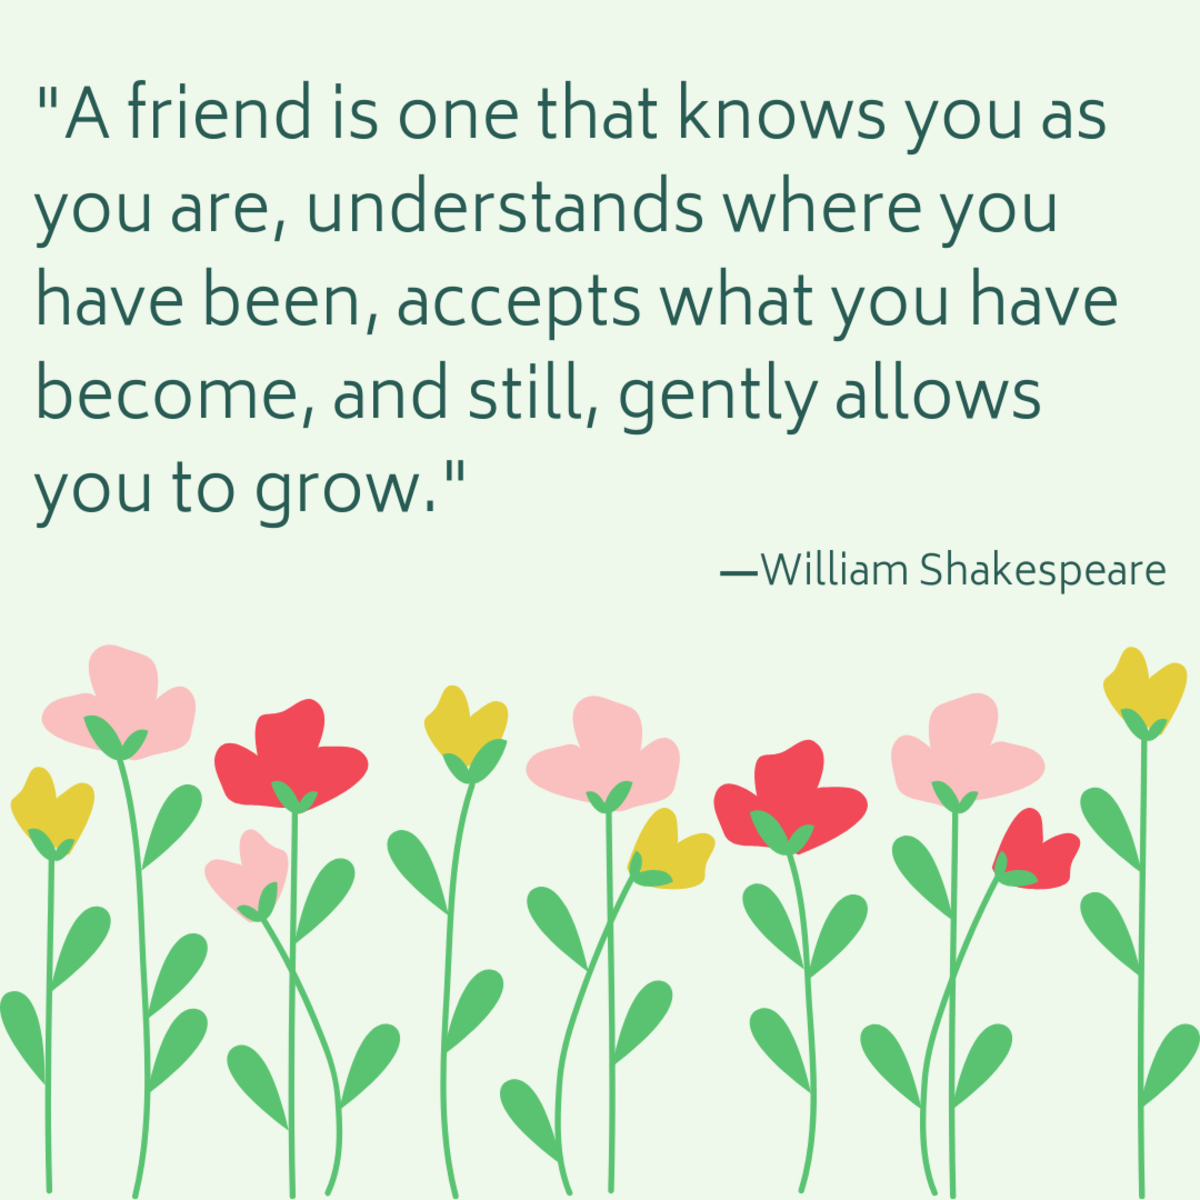 If you still can't seem to find the right words to thank your friend, let these quotes speak for you.